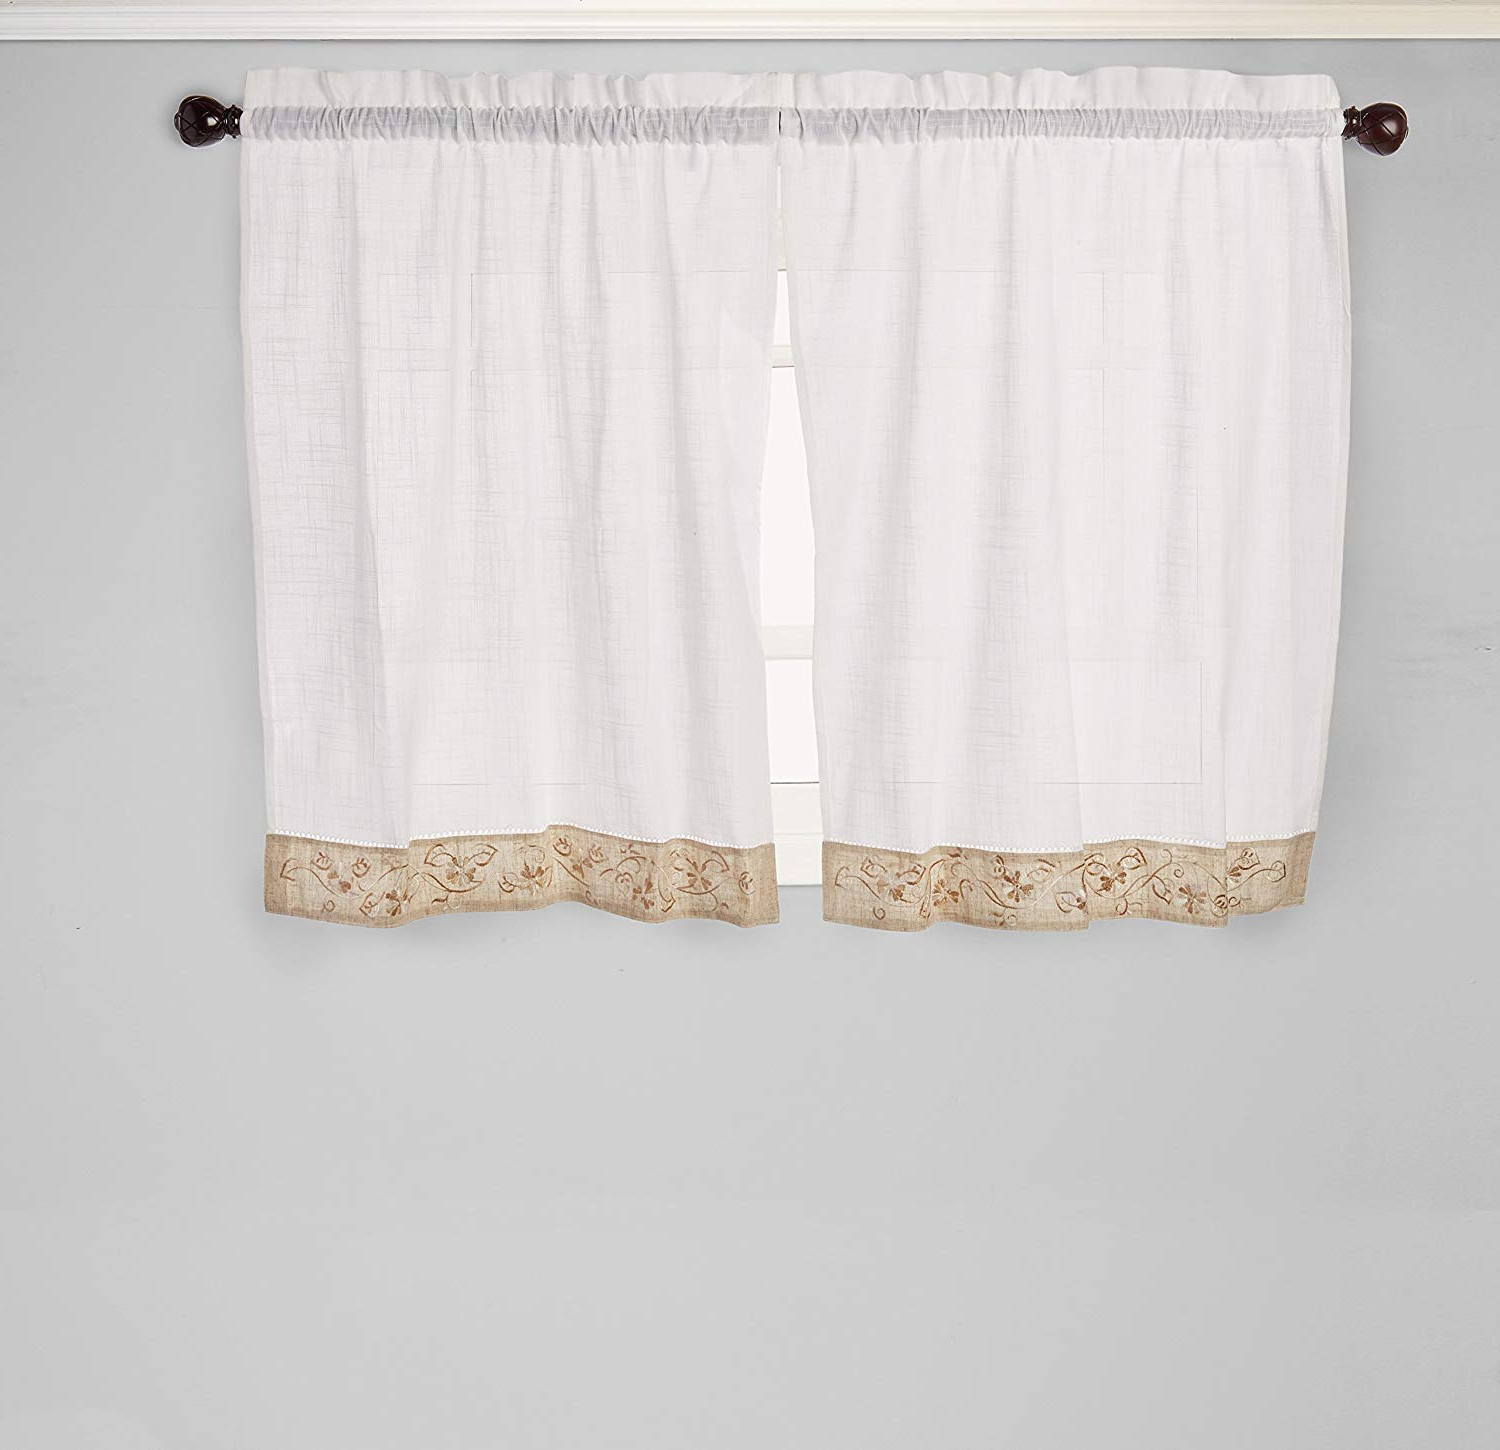 "Oakwood Linen Style Decorative Curtain Tier Sets Pertaining To Preferred Achim Home Furnishings Oakwood Tier Pair, 58 36 Inch, Natural, 58"" X 36"" (View 15 of 20)"